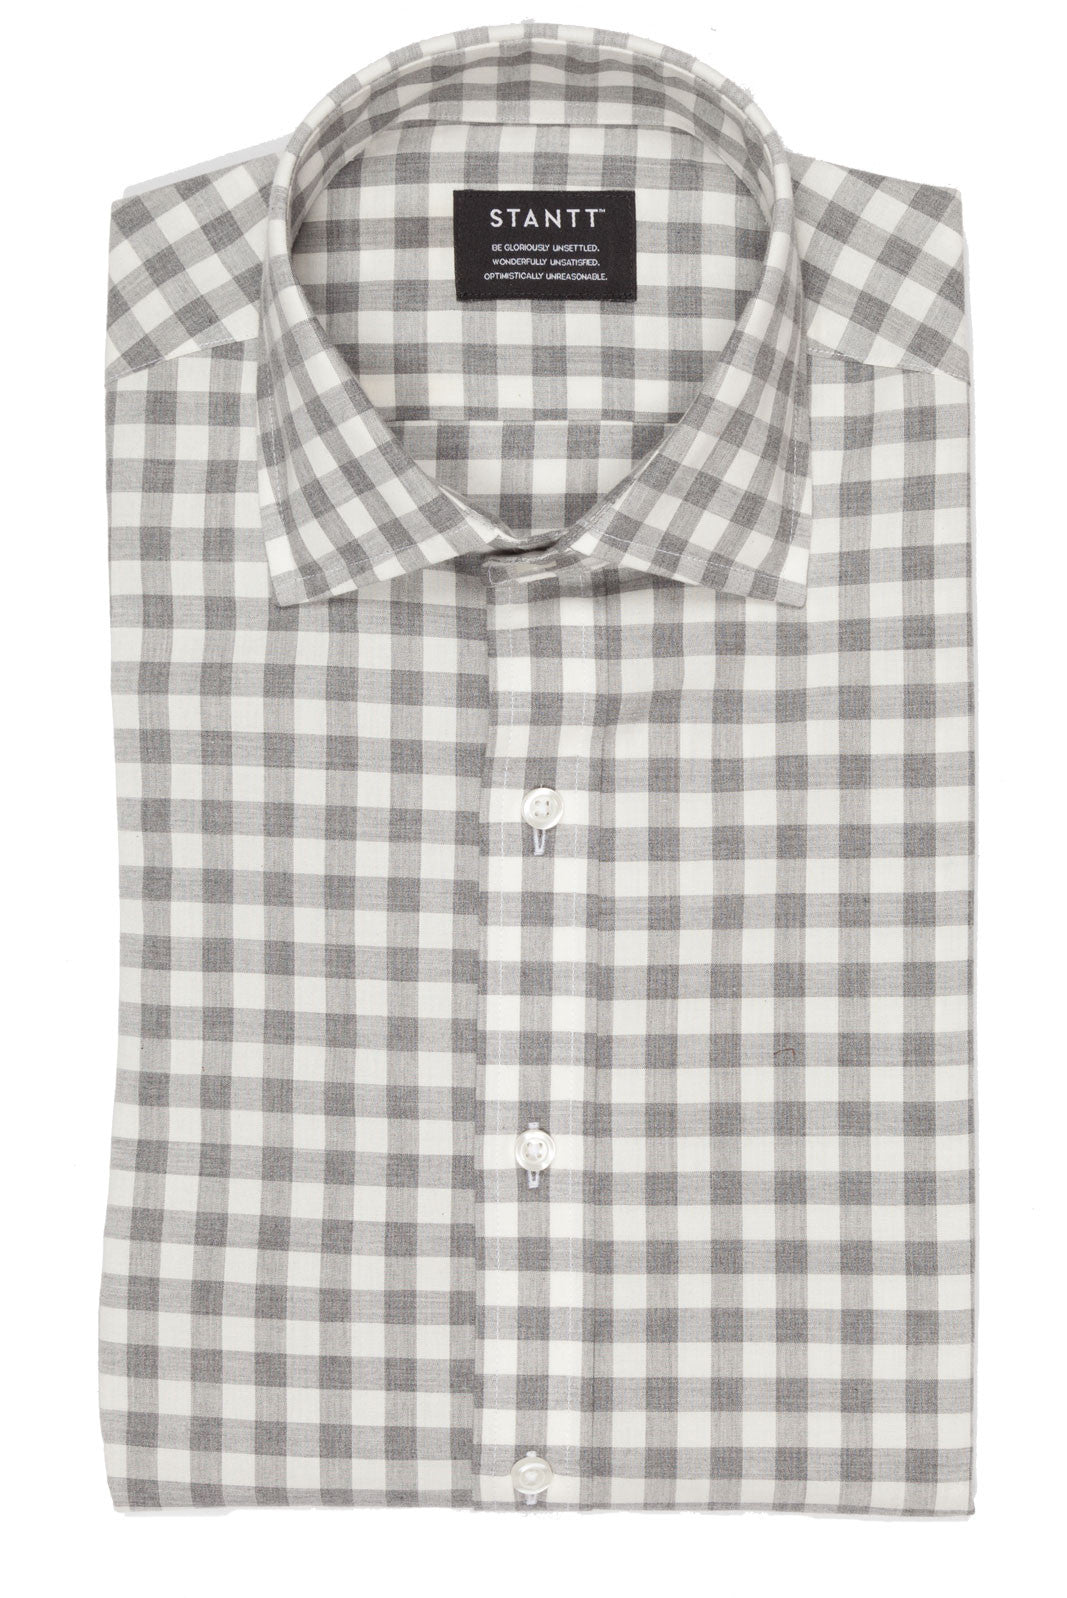 Grey Heather Gingham: Semi-Spread Collar, French Cuff